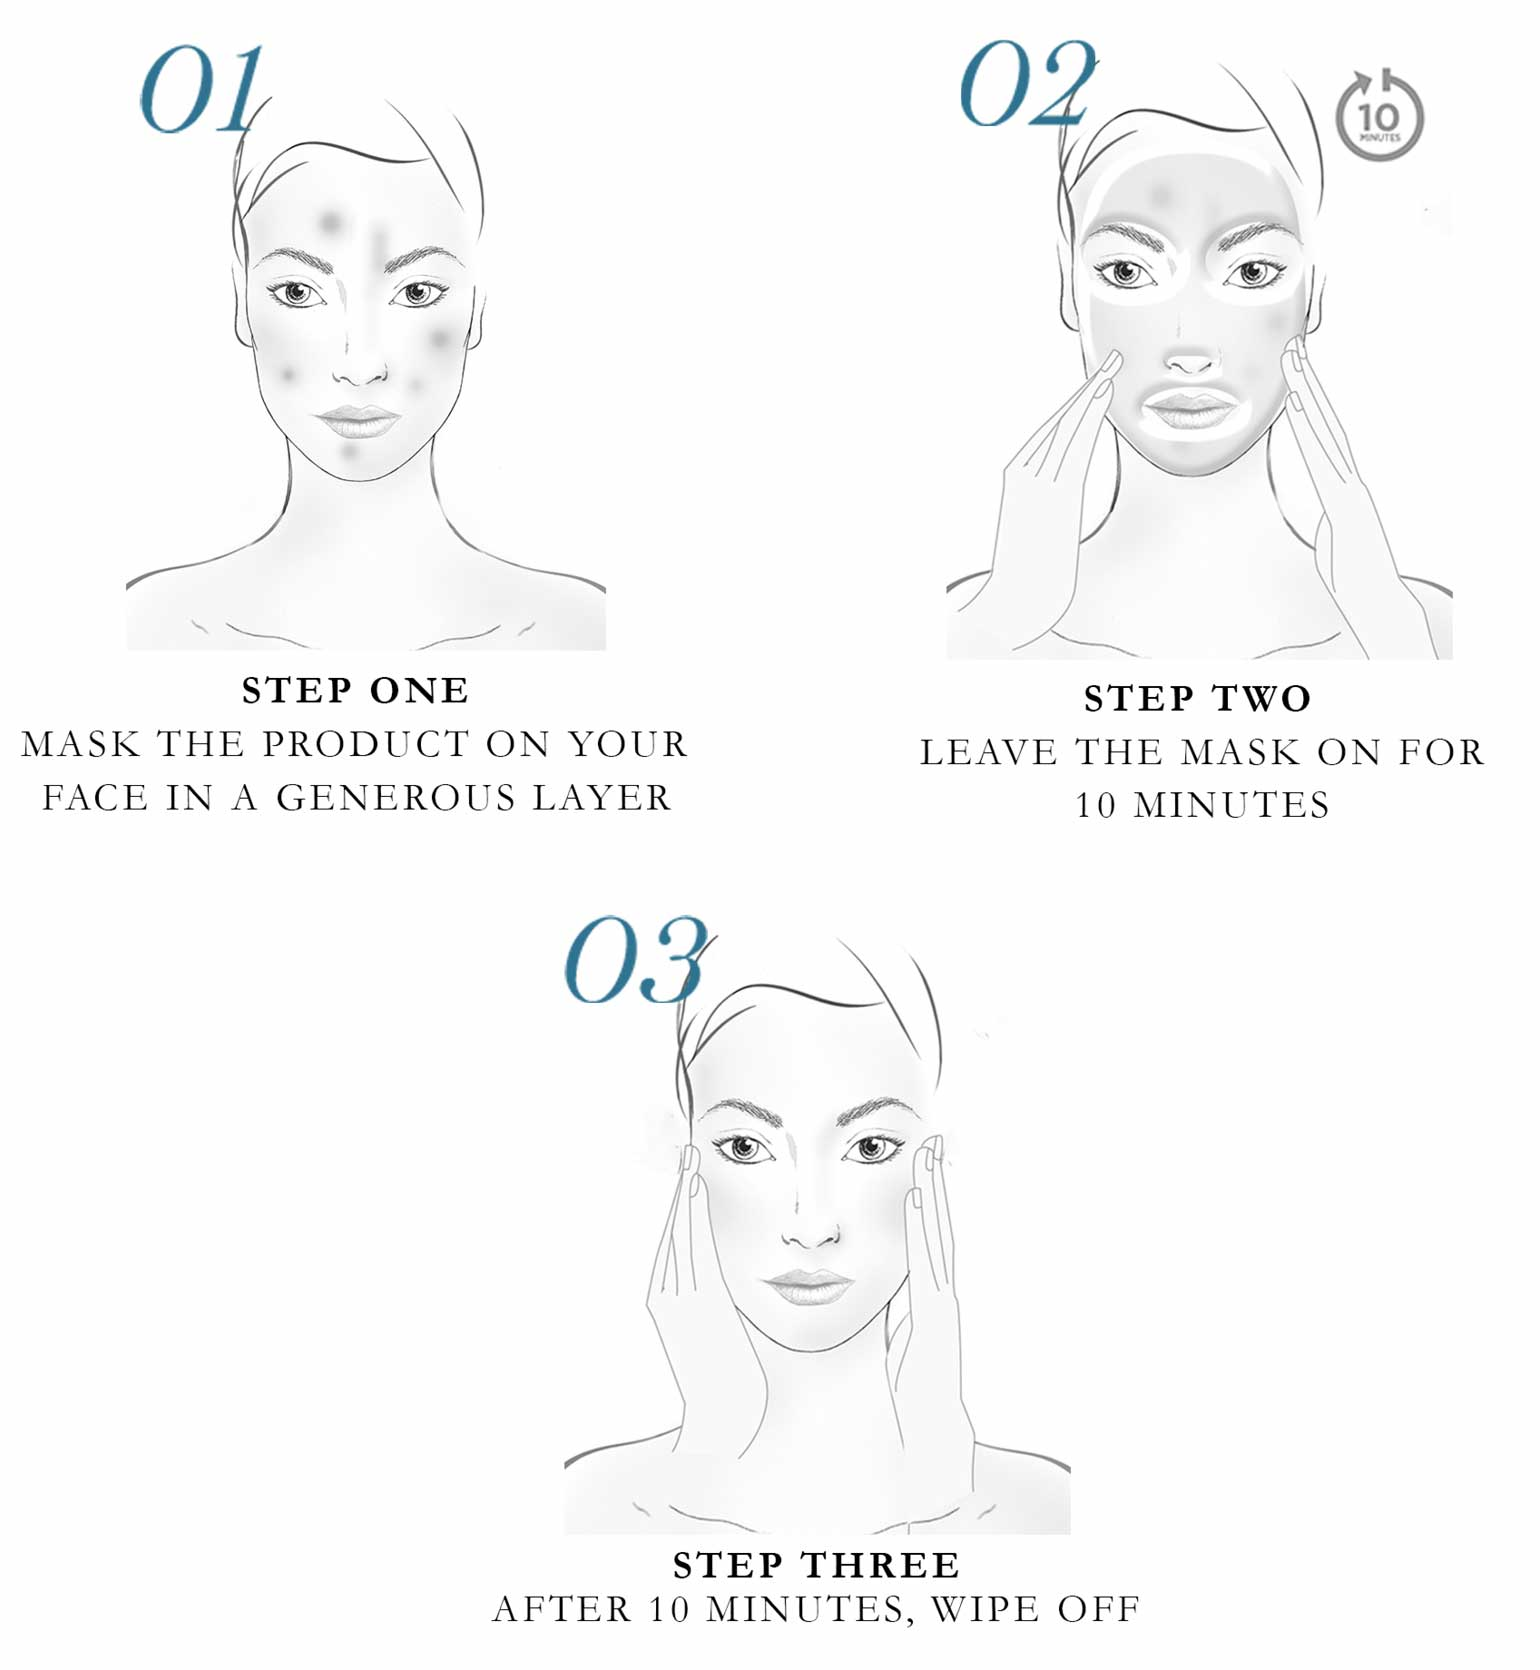 How to apply the Lancôme Rénergie Multilift Tightening Lifting Mask